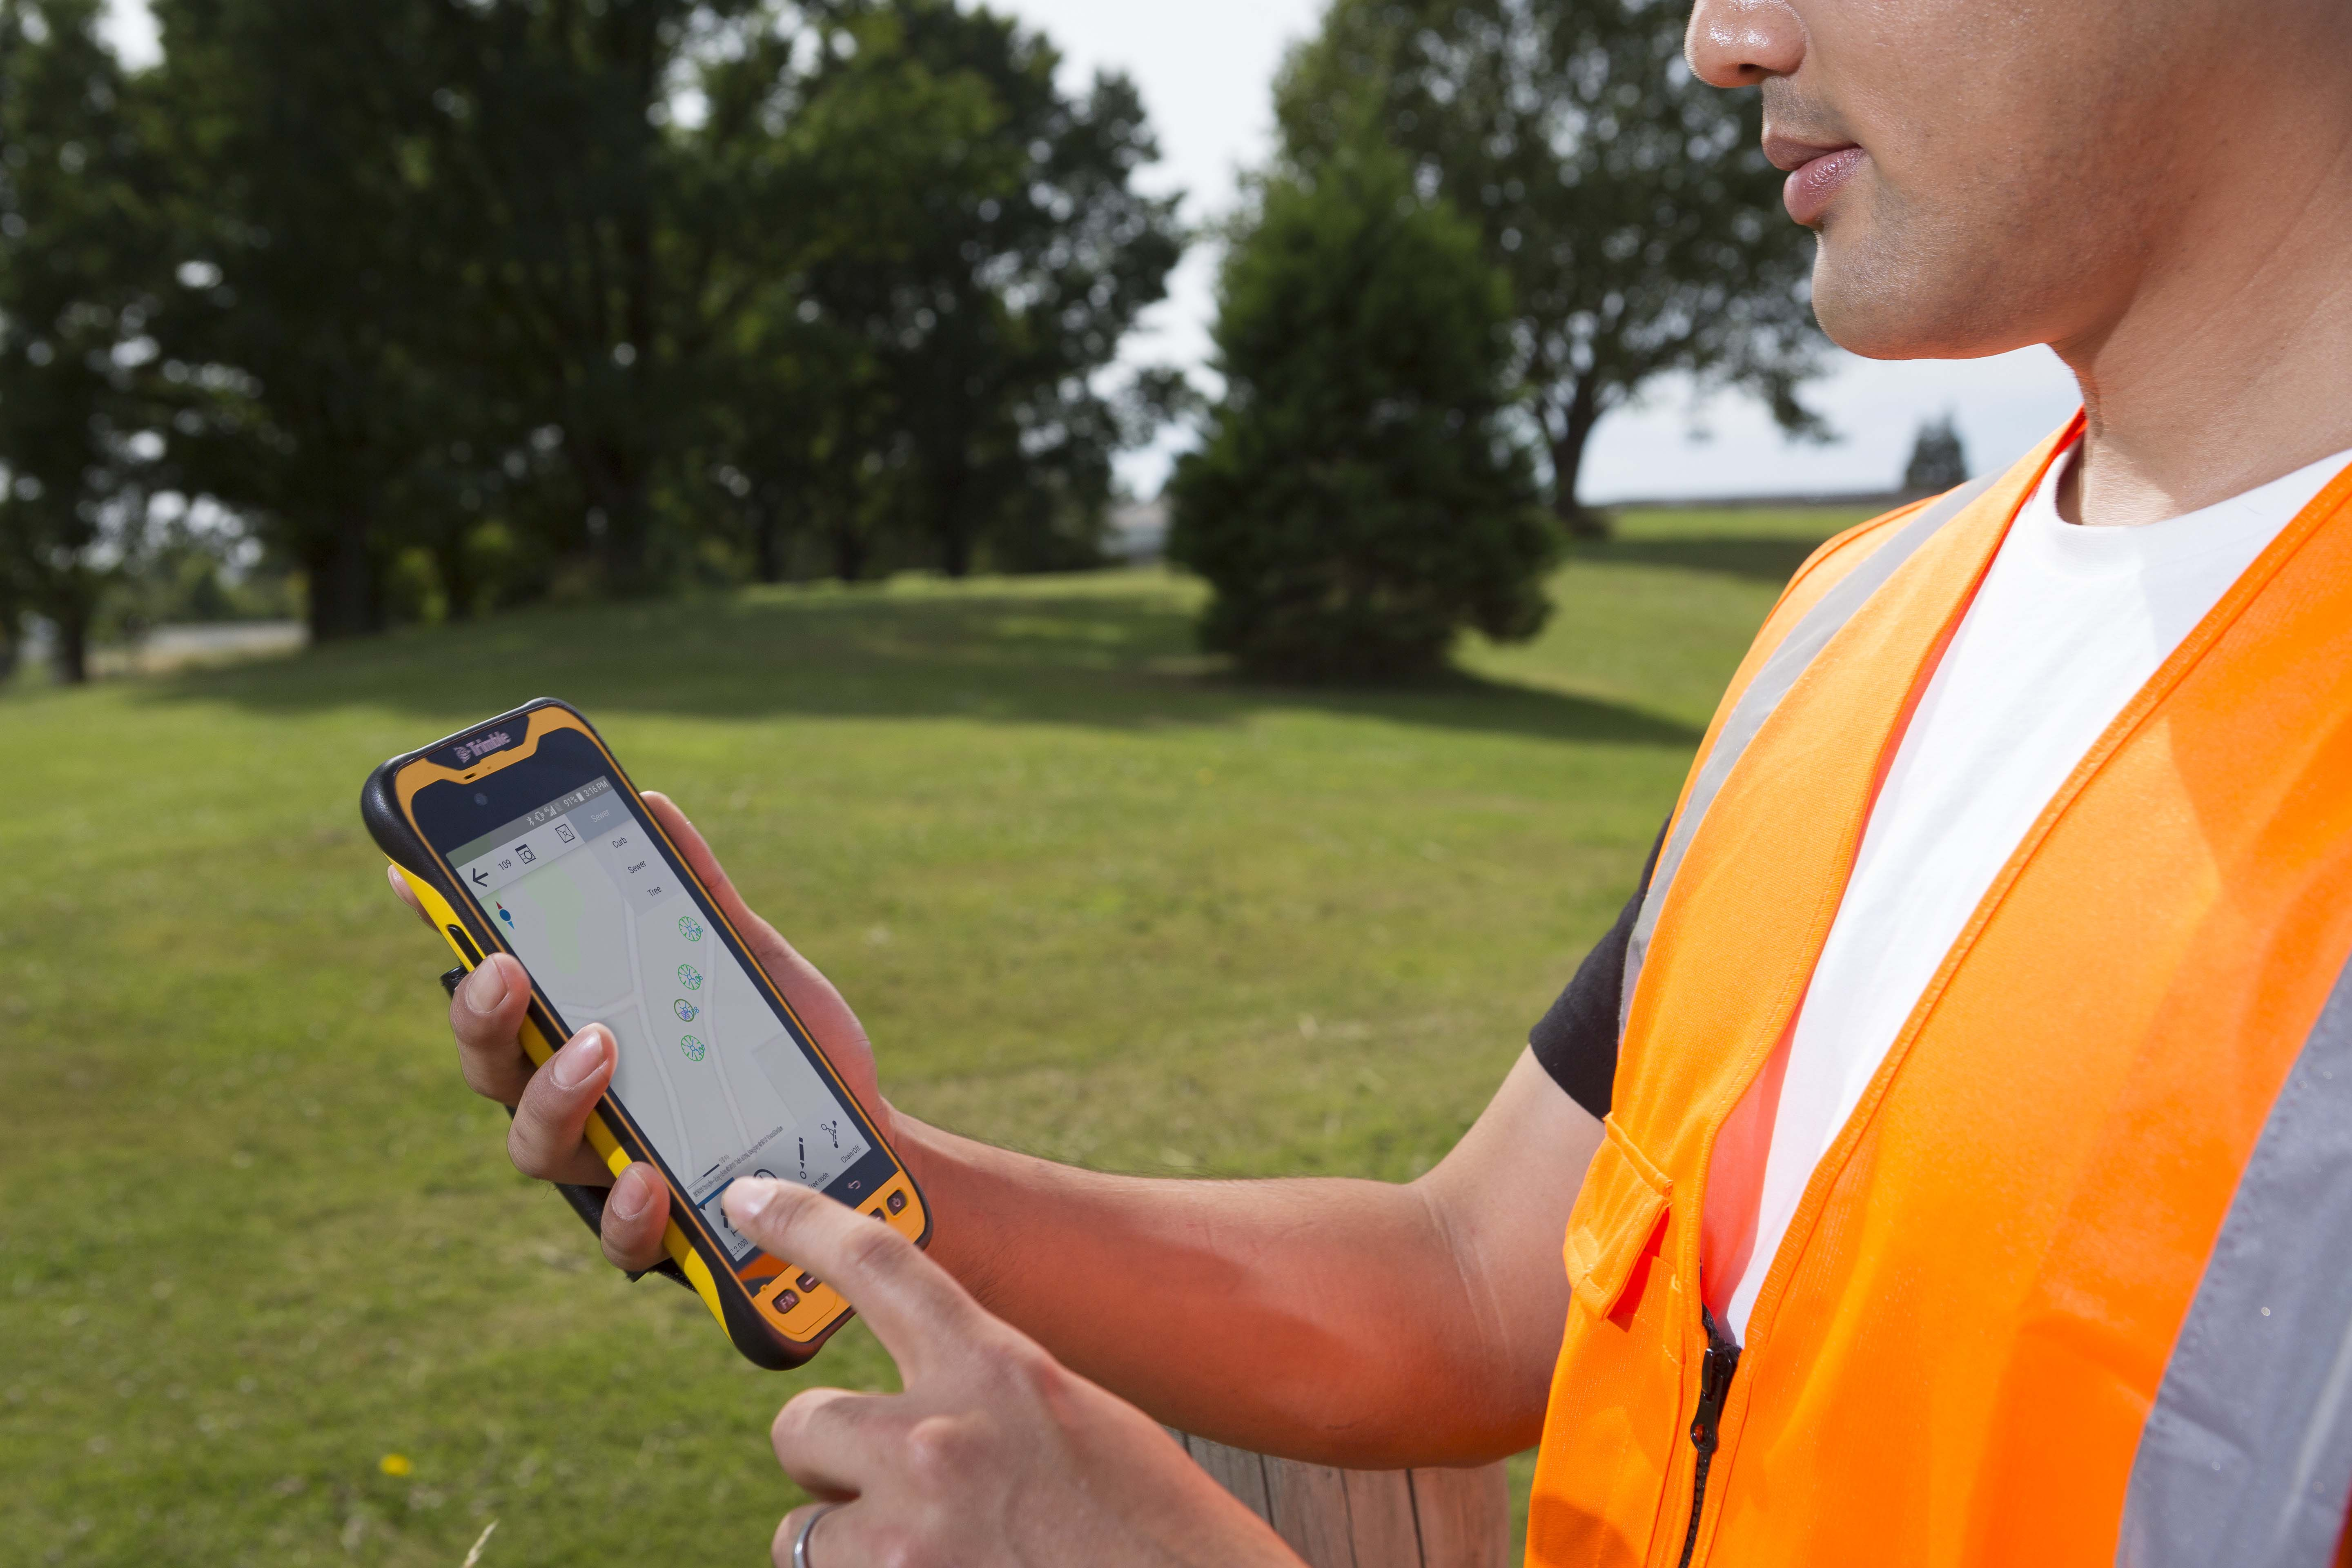 Introducing Trimble TDC600, a Next-Generation Smartphone and GIS